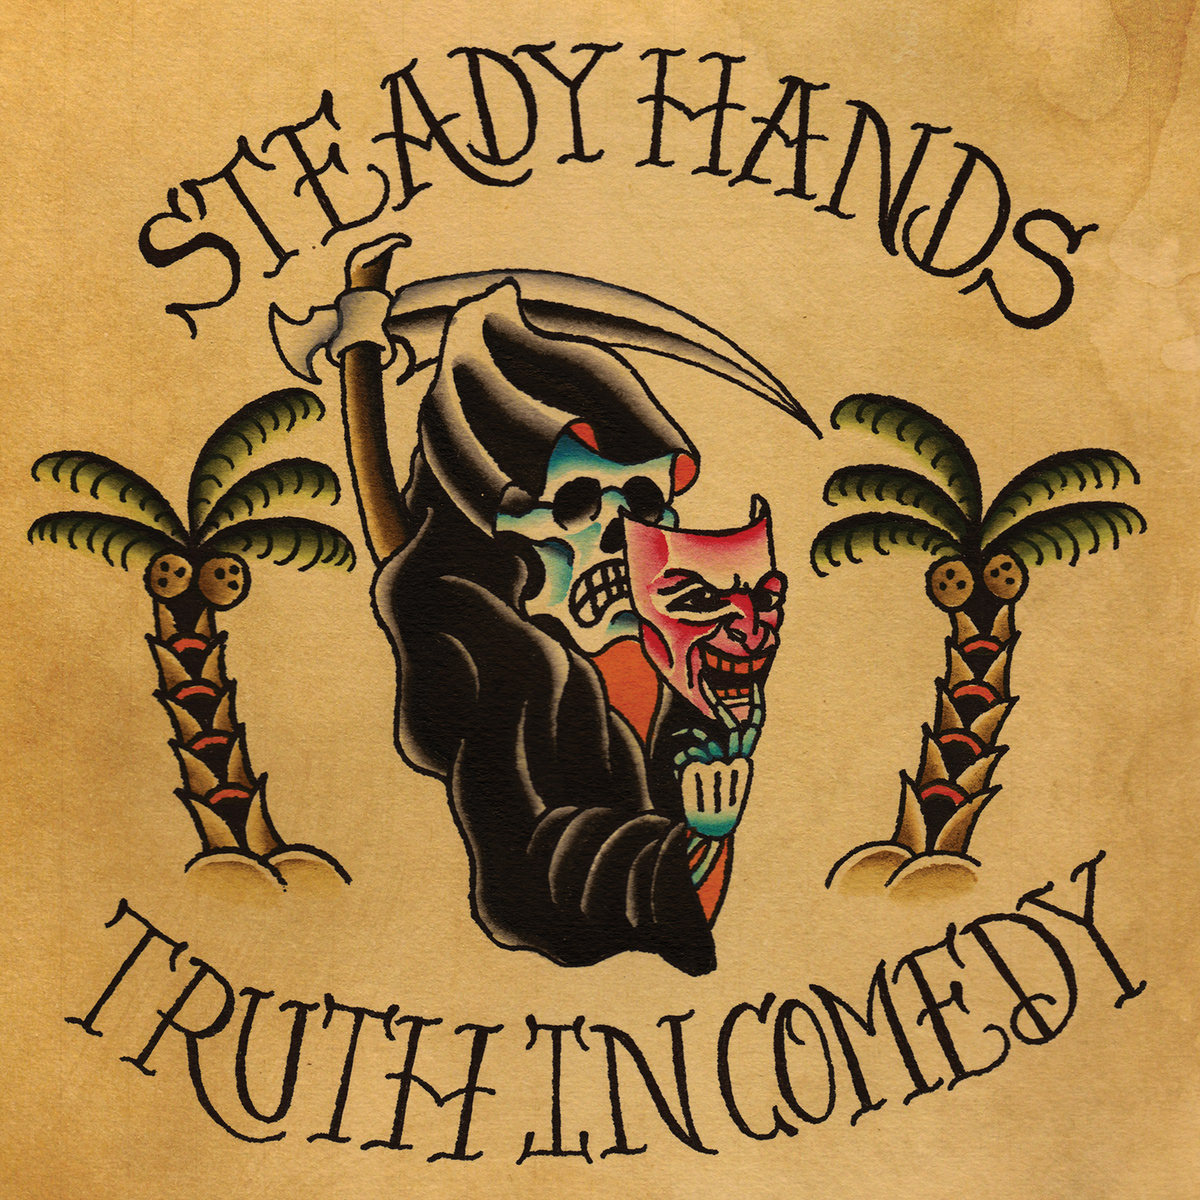 Steady Hands - Truth In Comedy Vinyl Layout & Design Illustration by Bryan Holland - instagram.com/bryanhtattoos